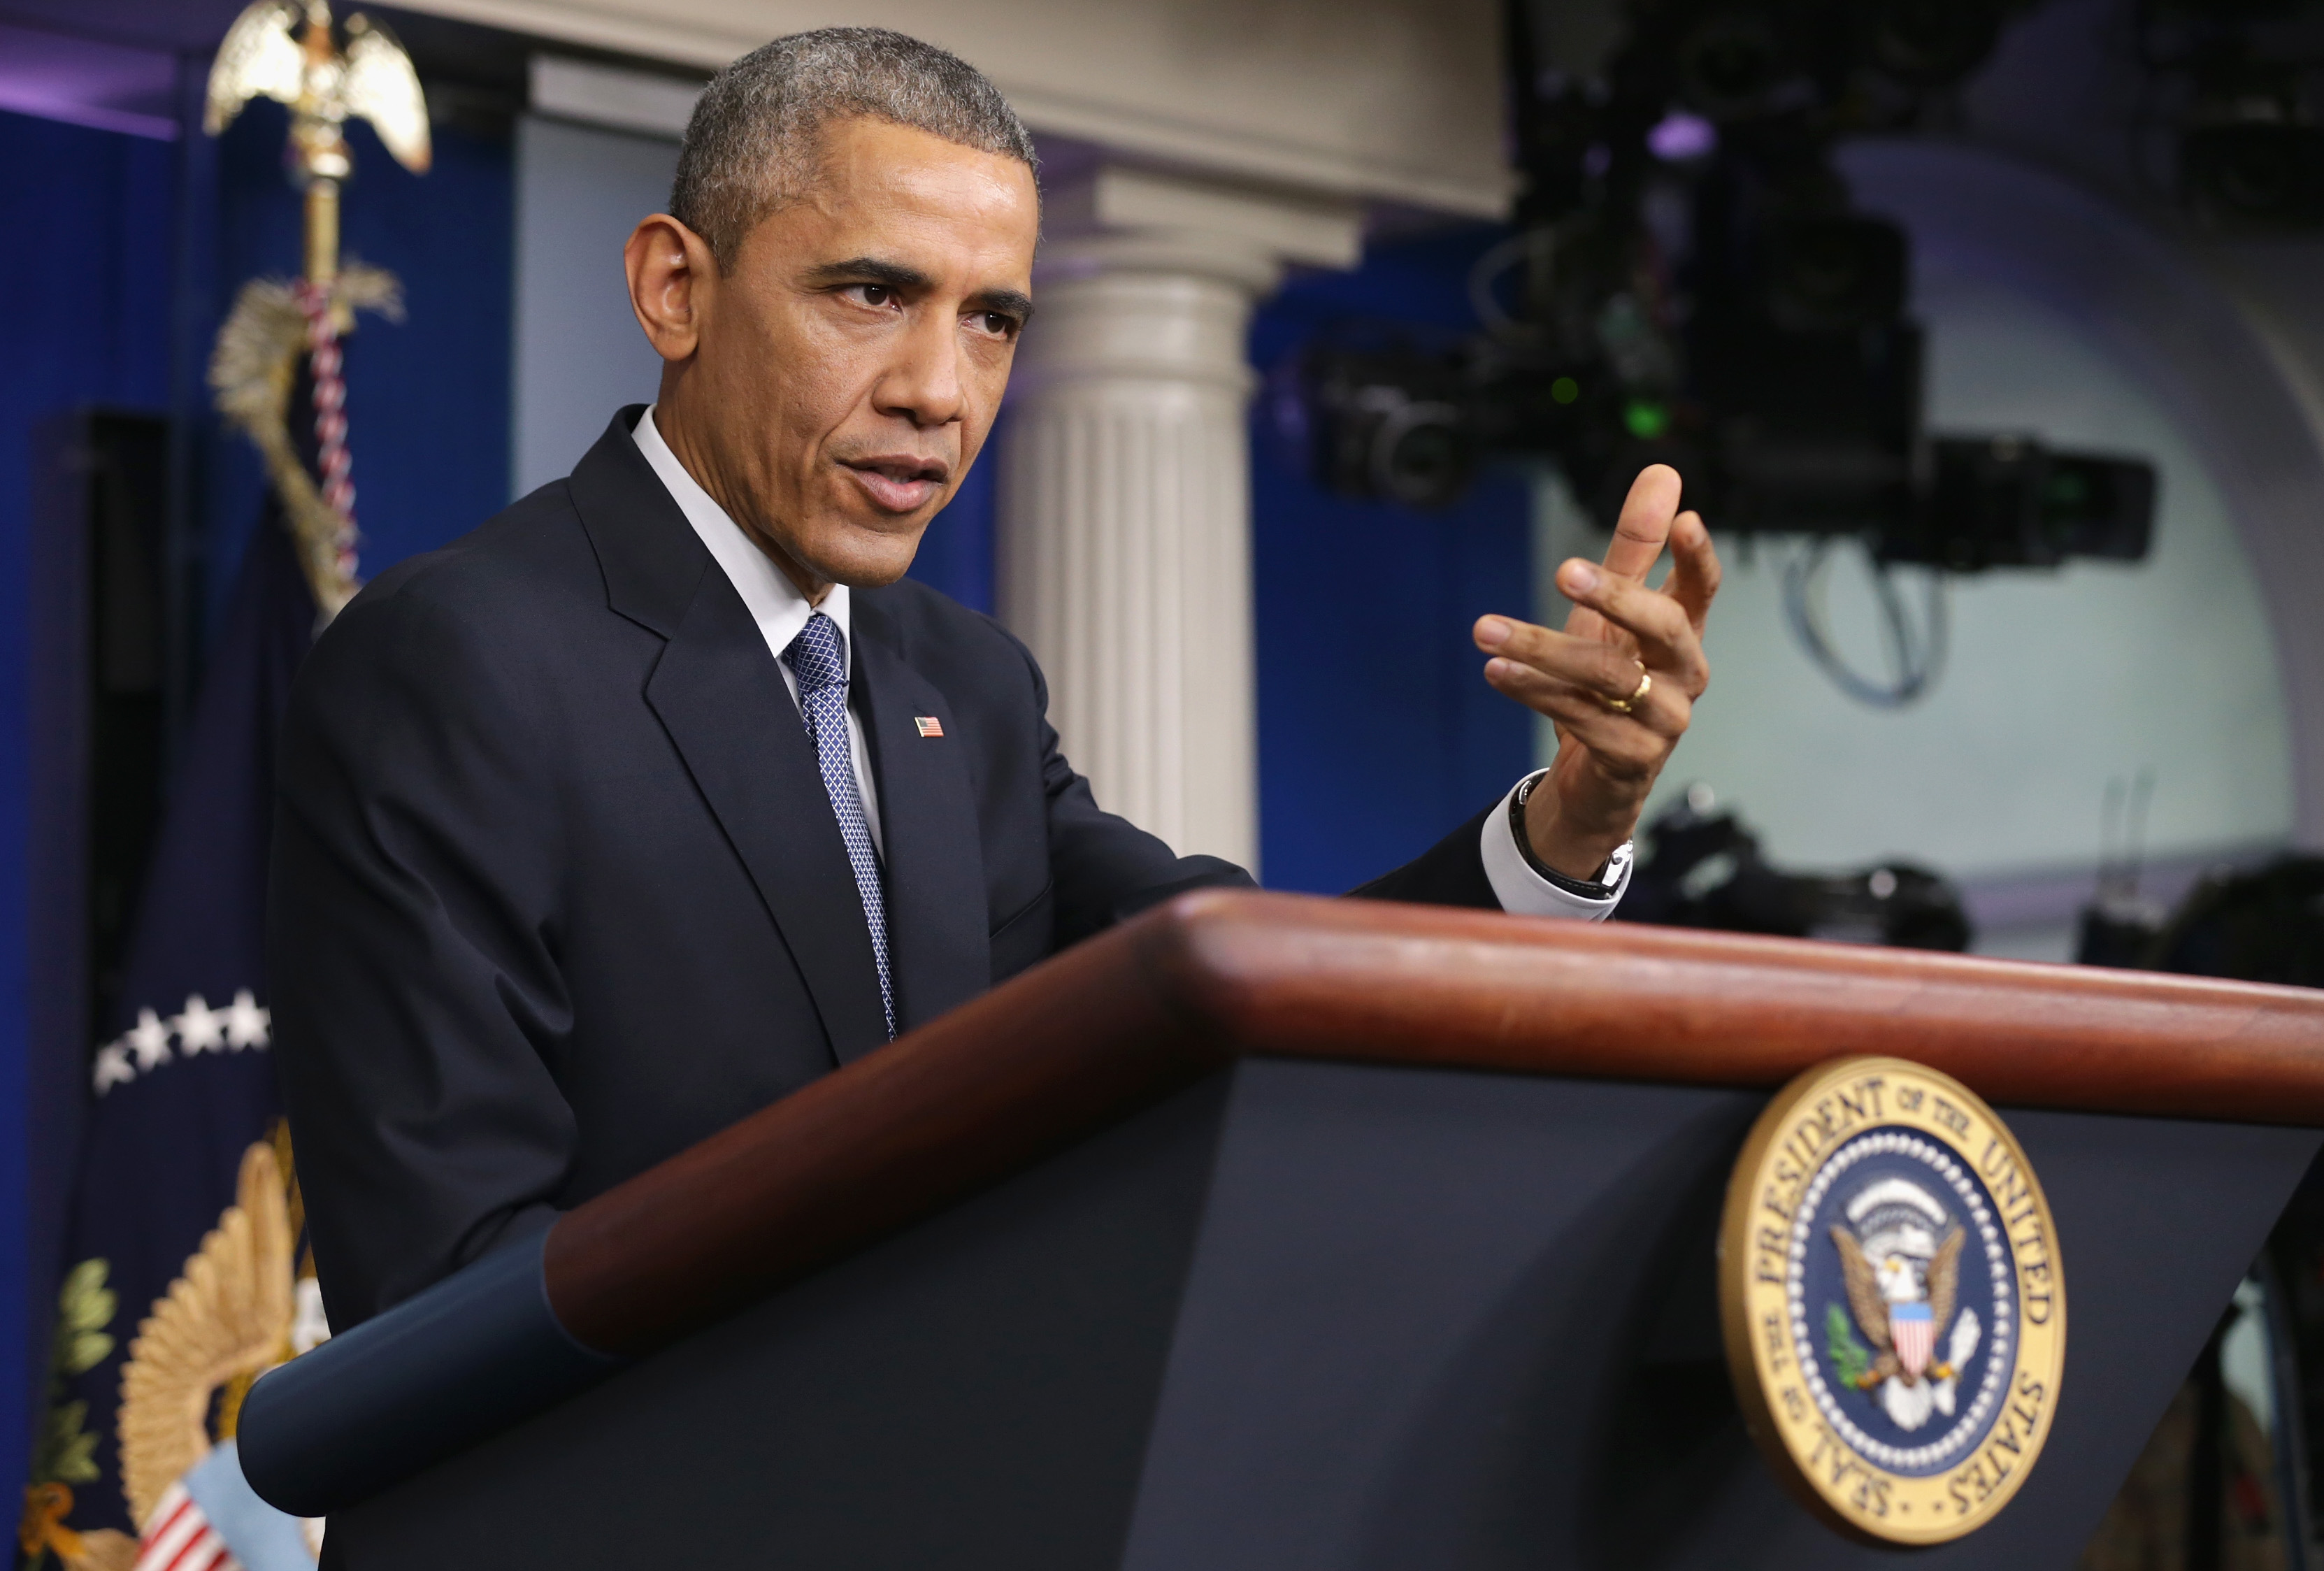 President Barack Obama speaks to members of the media during his last news conference of the year.